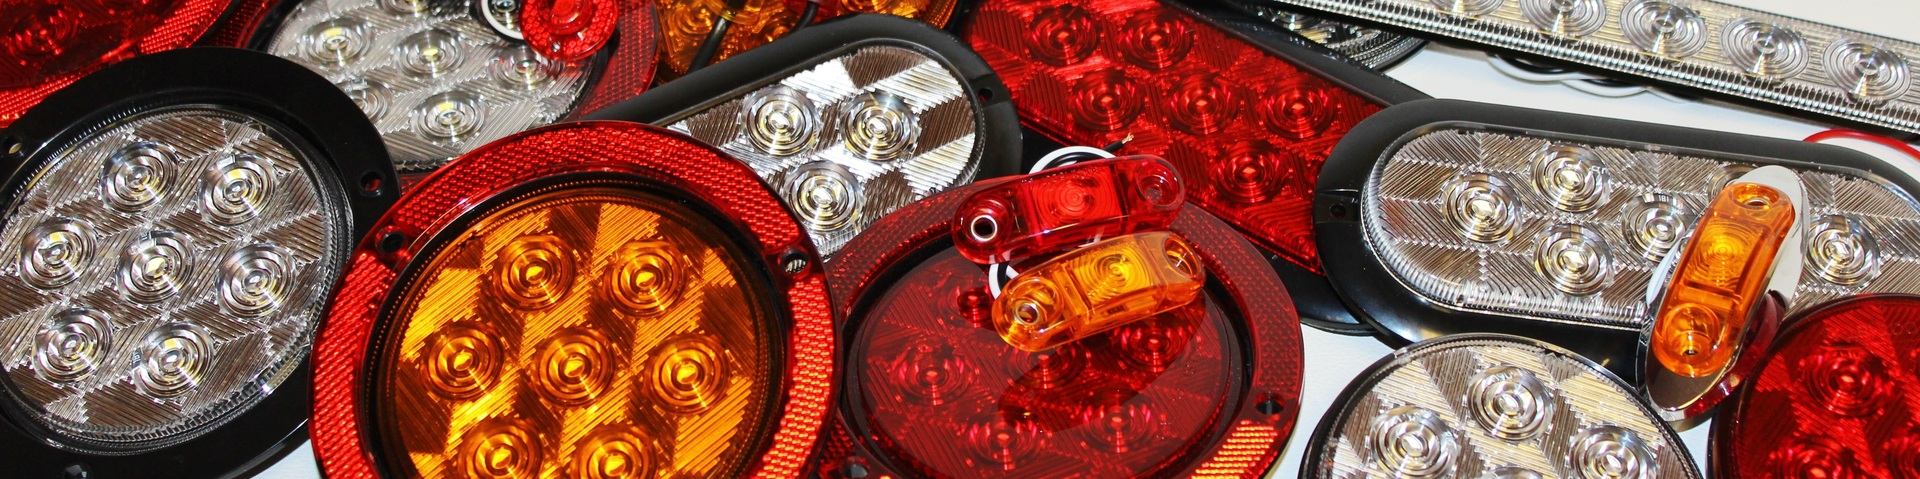 Stellar Lighting supplies product to the OEM vehicle builders including RV Marine Specialty Vehicle Trucking Cargo Trailers Race Trailers ... & About Us   Stellar Lighting